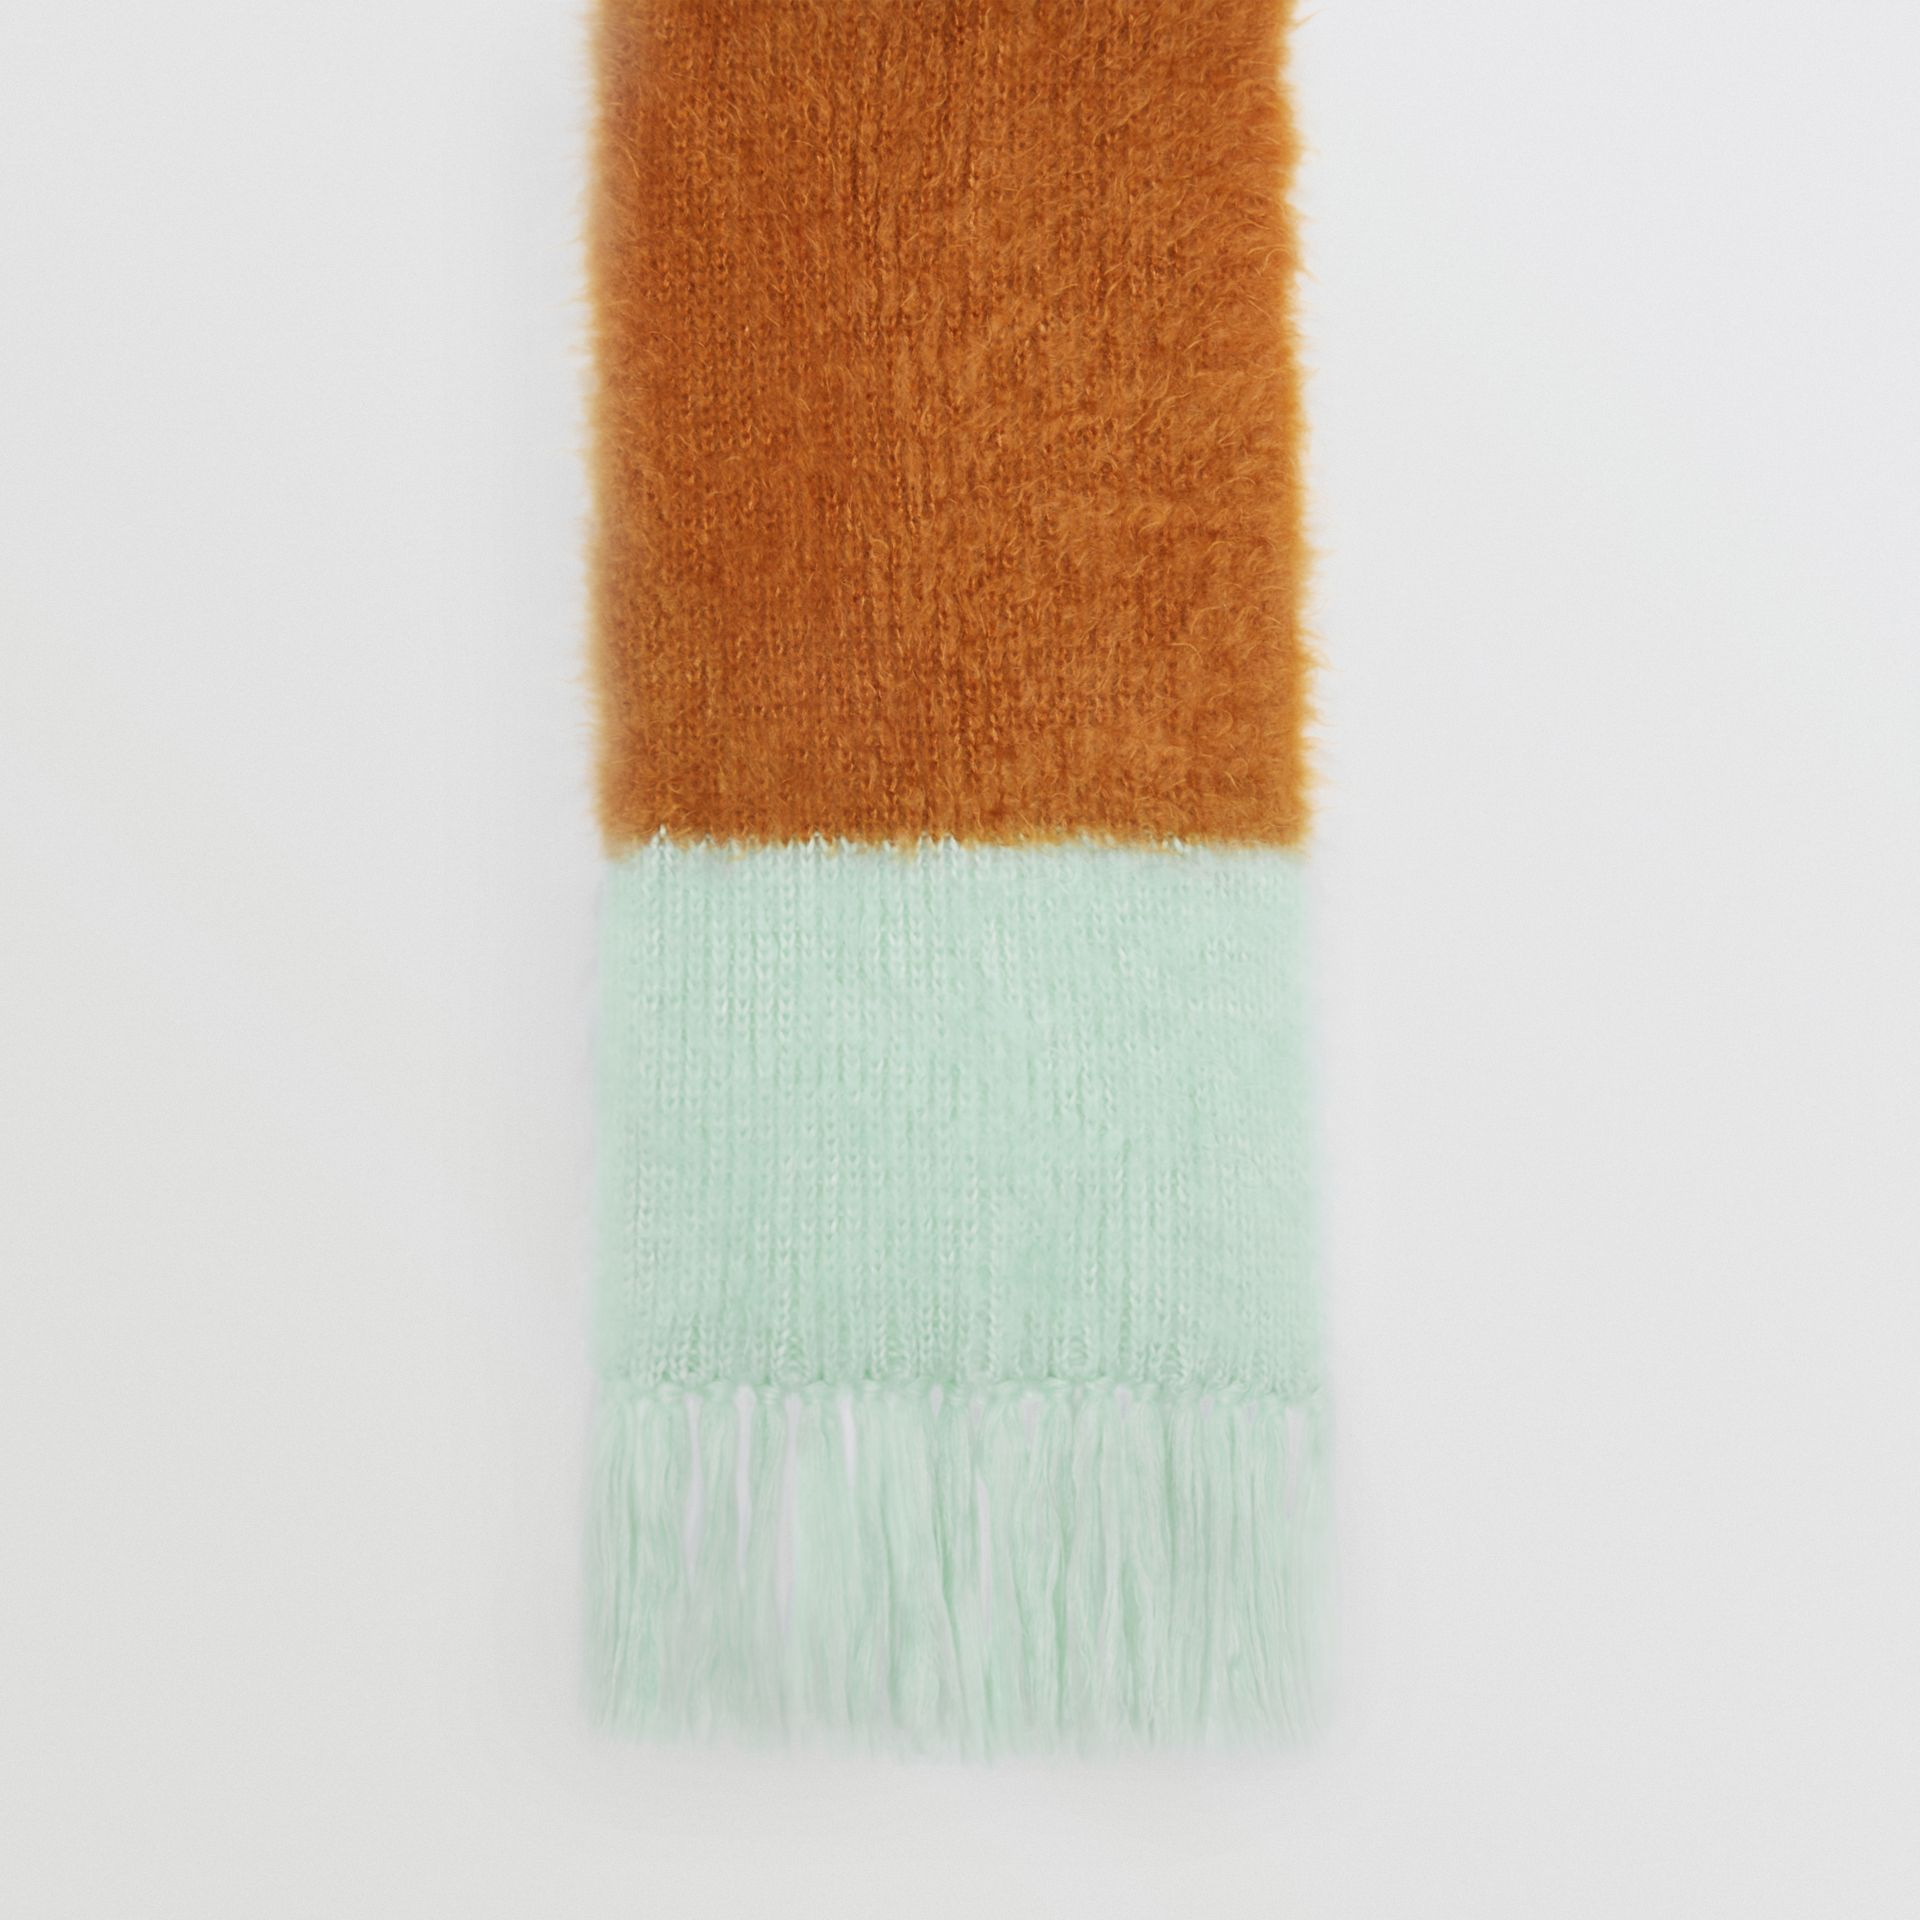 Colour Block Chunky Knit Mohair Silk Scarf in Sand - Women | Burberry - gallery image 4